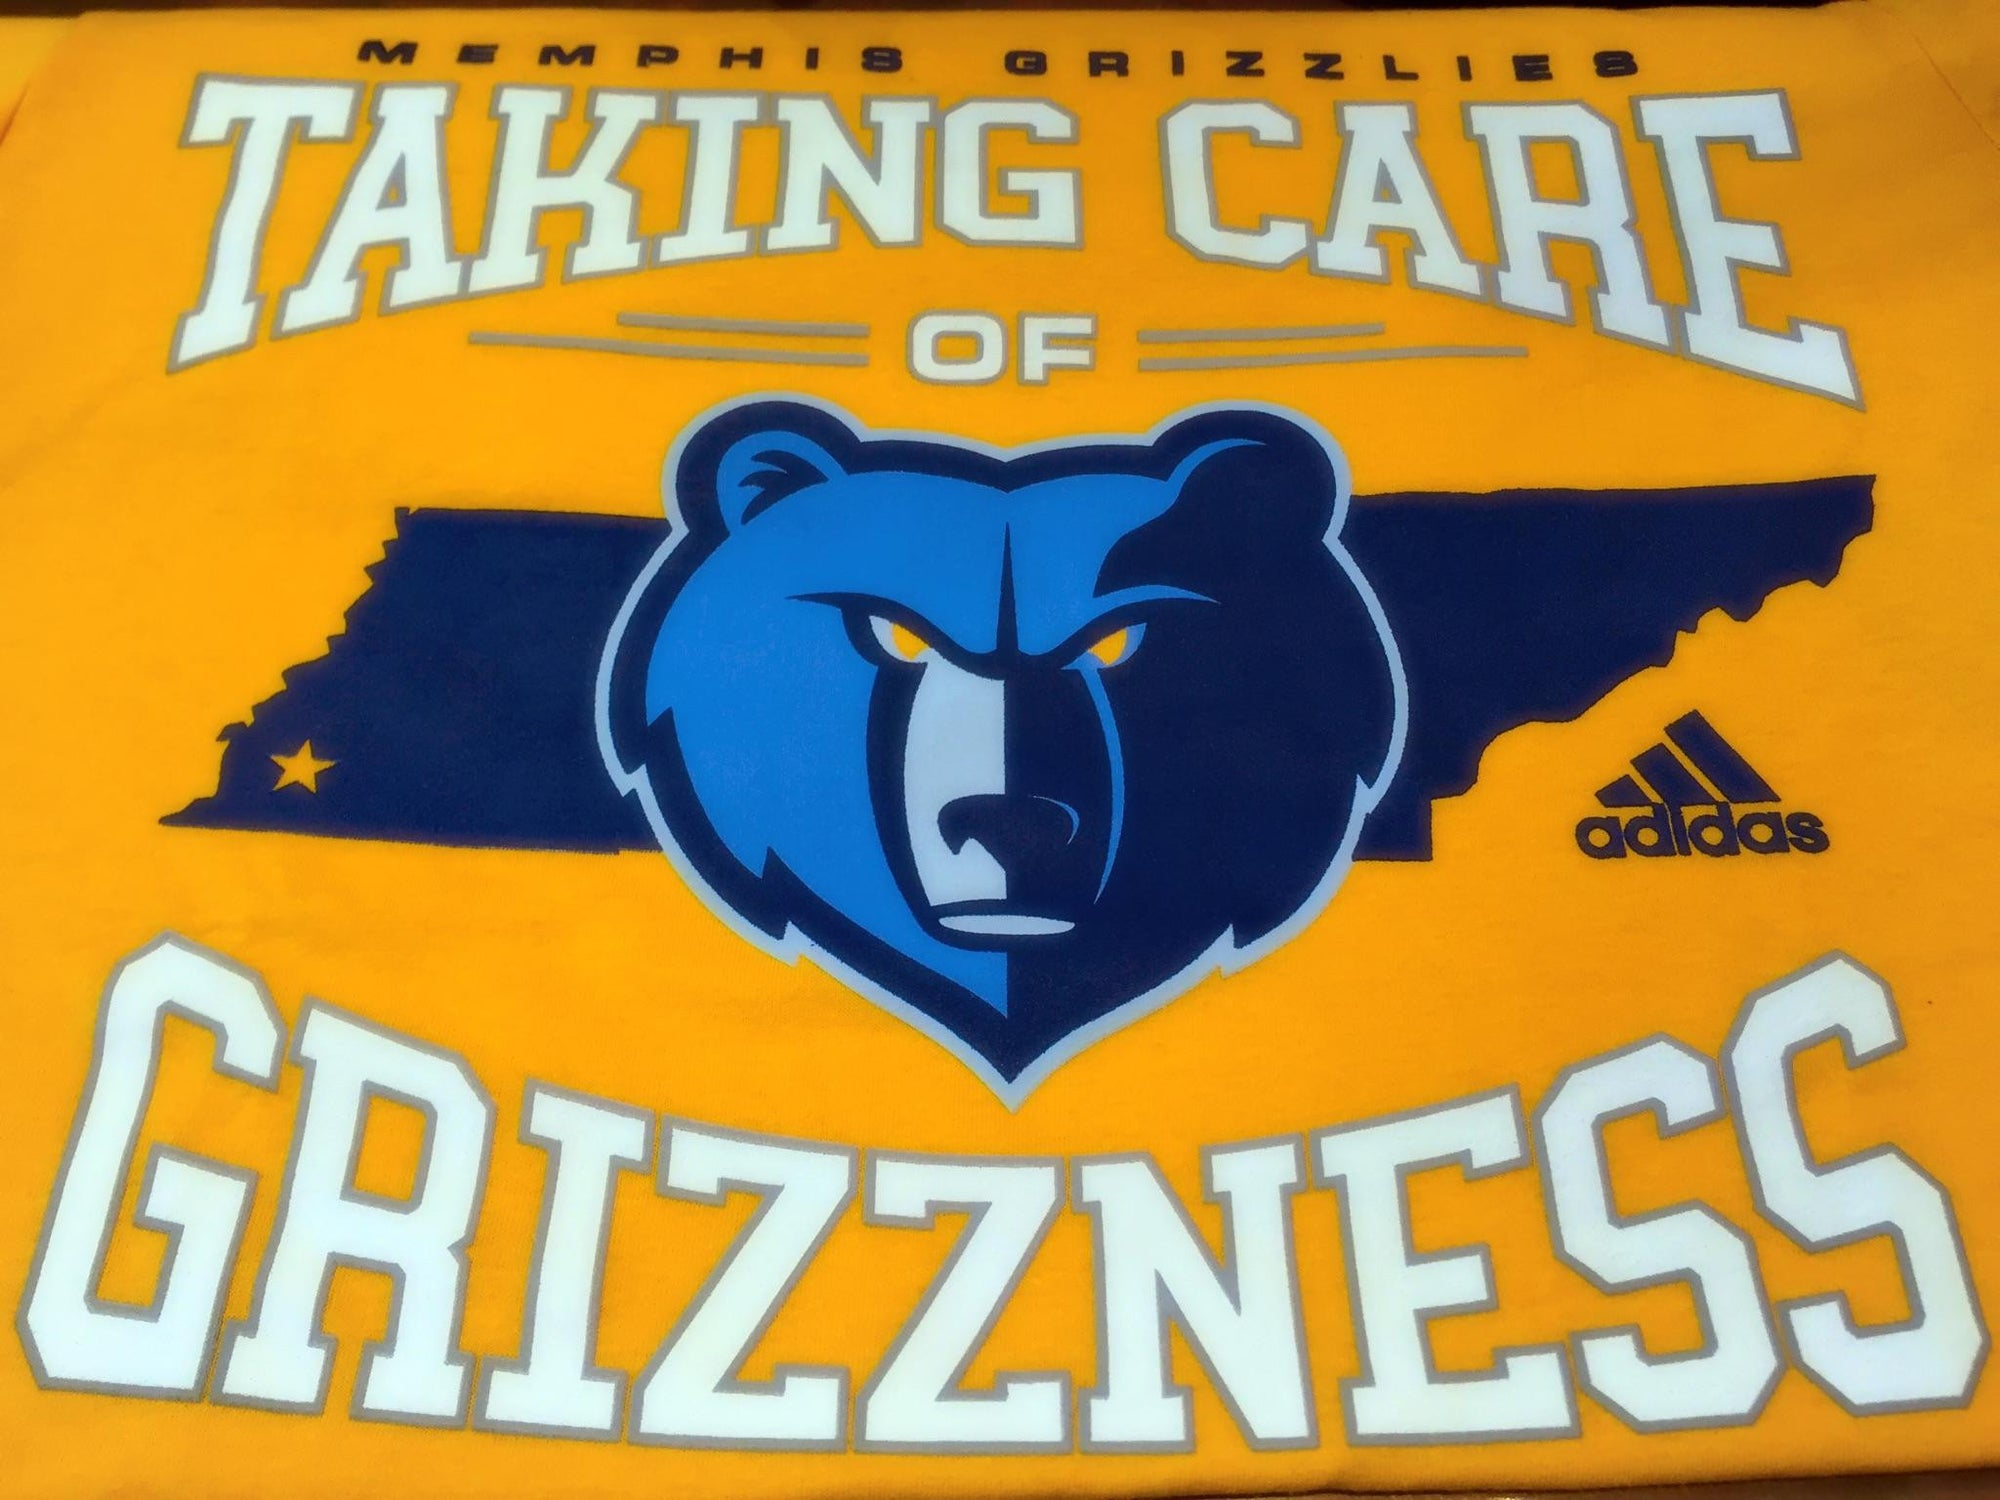 Adidas Memphis Grizzlies Taking Care of Grizzness Gold Tee 3720A 008